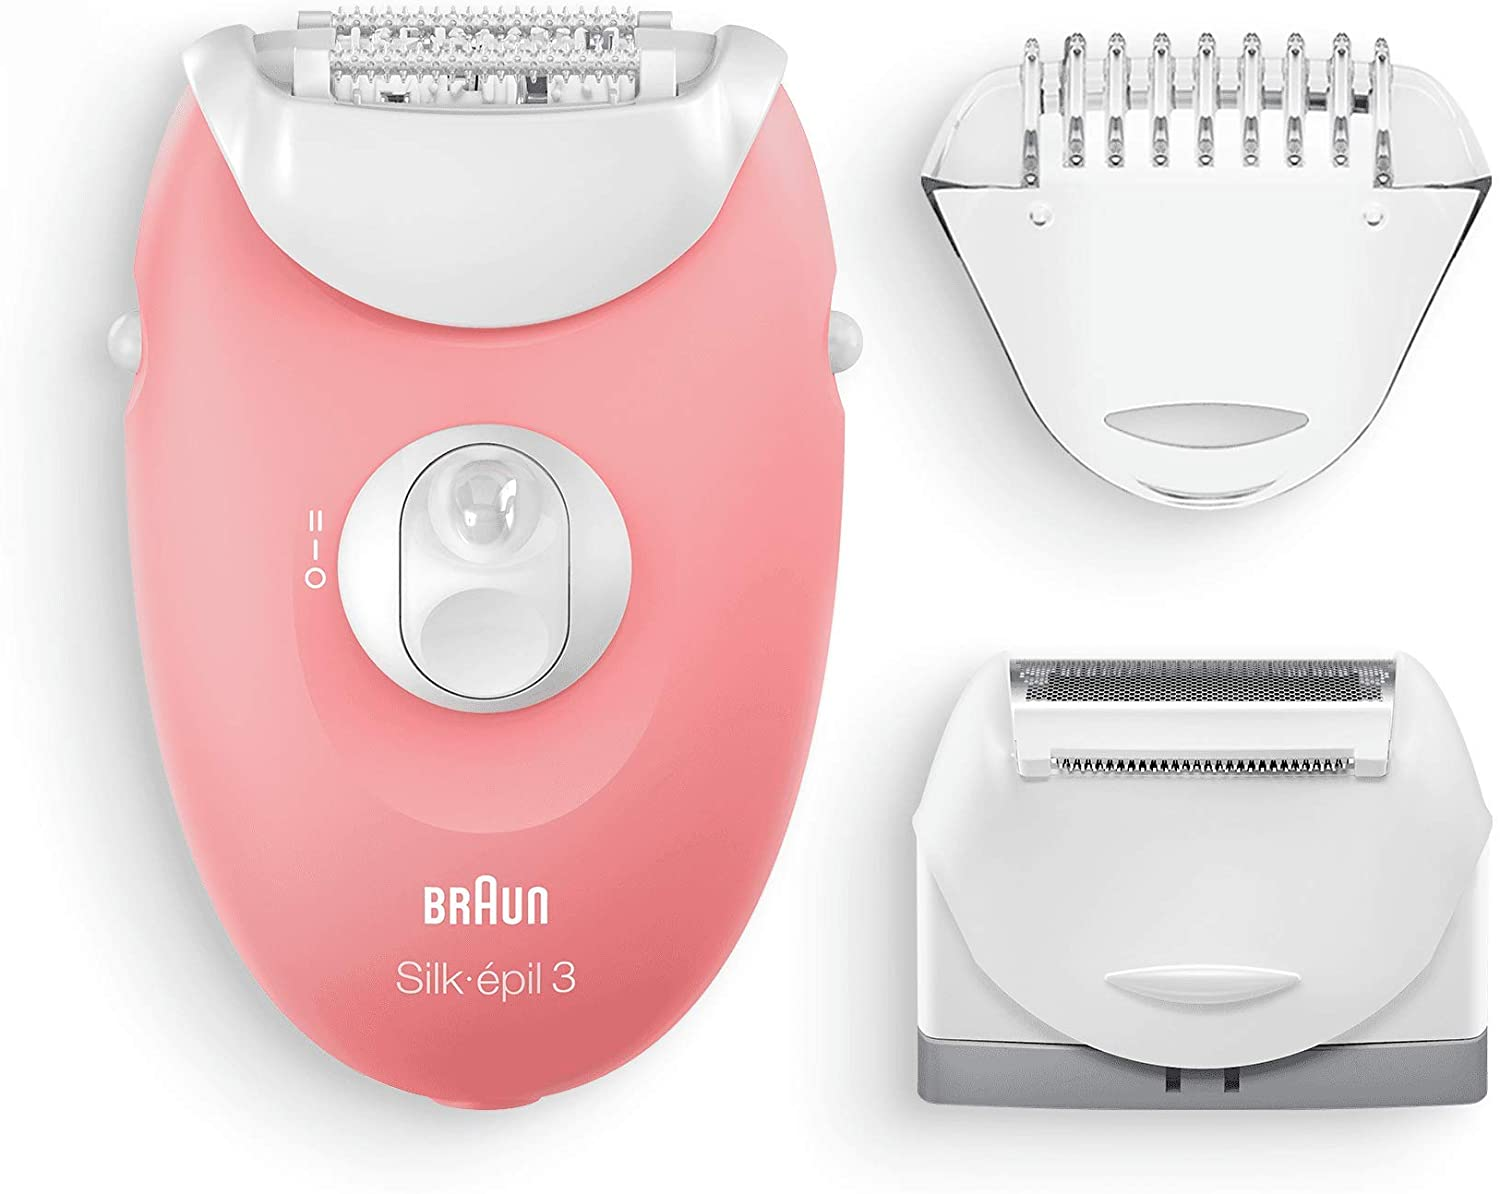 Braun 3440 Silk-Epil 3 Cord Dry Use Epilator with 2 Additional Heads, White and Pink enlarge